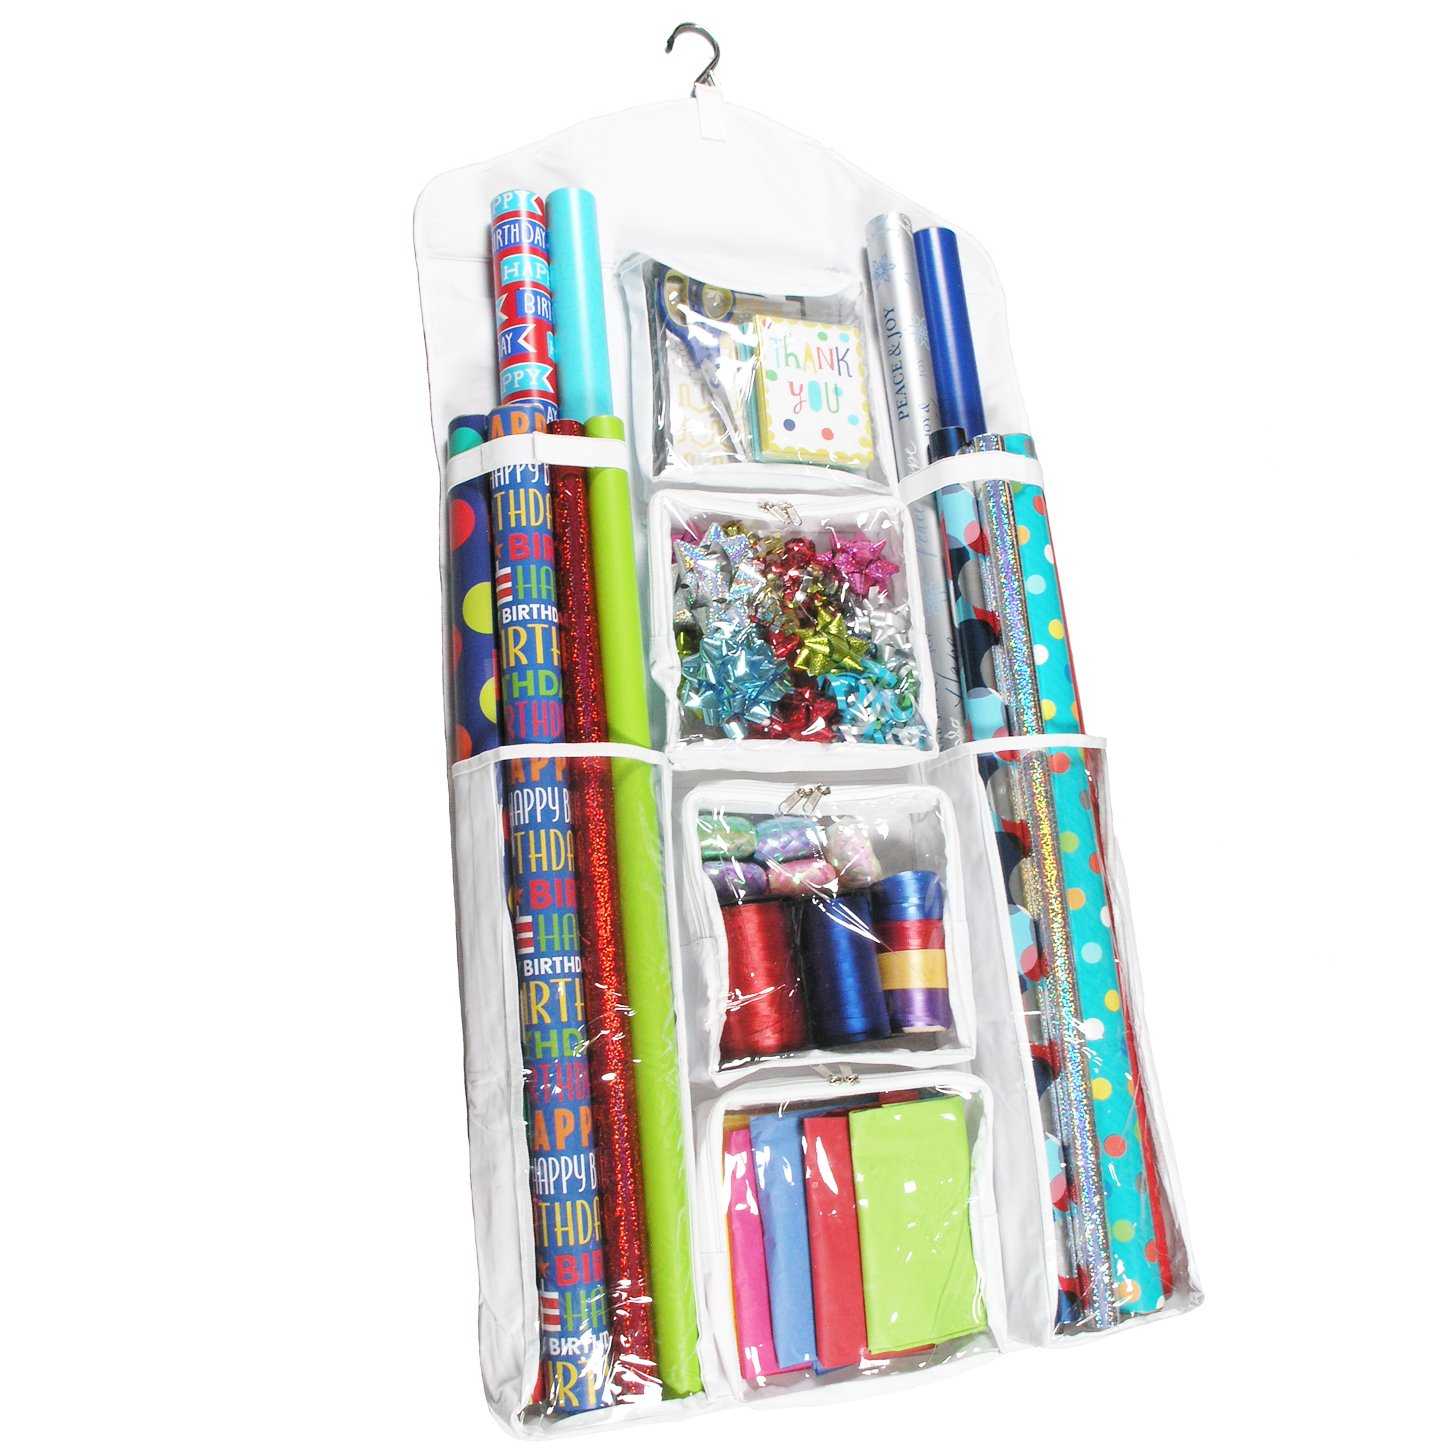 Extra Large Legato Wrapping Paper Storage/Organizer, Double Sided and Super Durable, Great for Gift Wrap, Gift Bags, and Accessories, Large Size (47'' x 23'') by Legato Supply